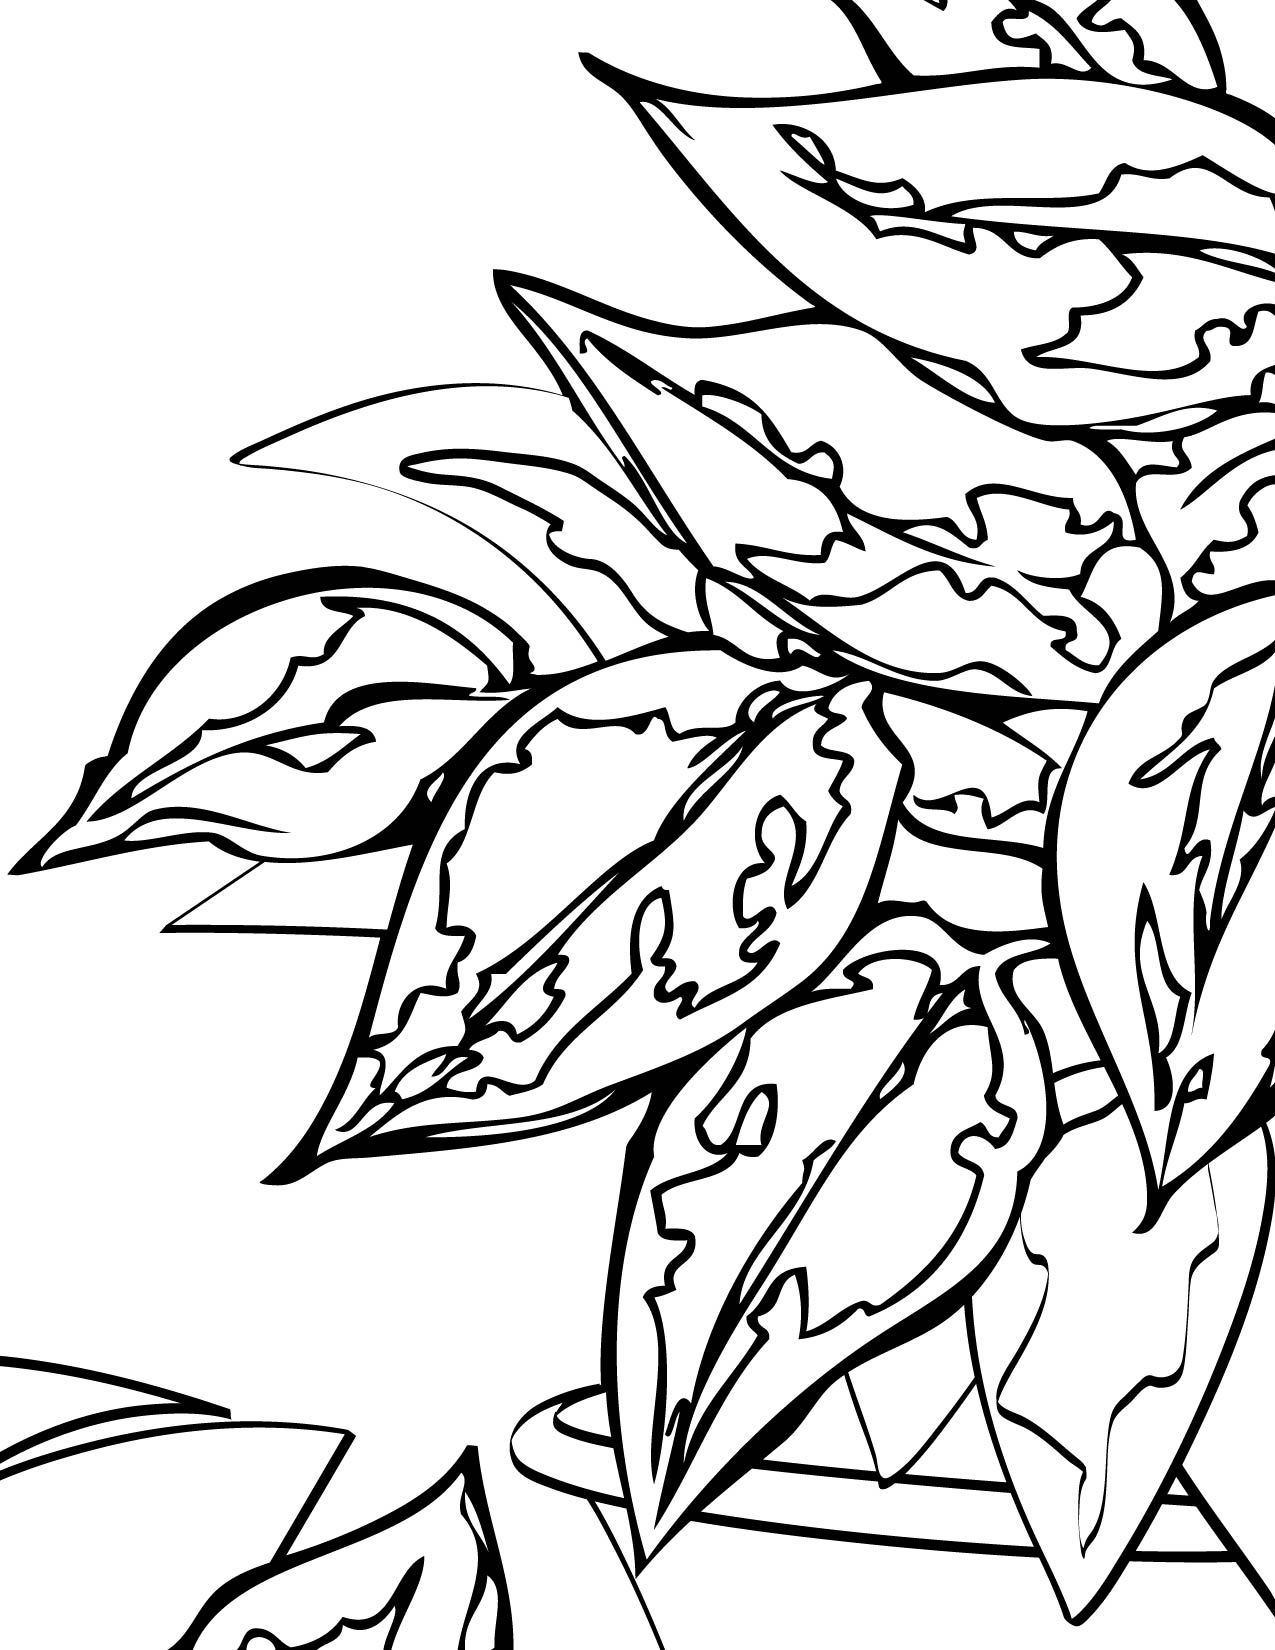 plants coloring pages plant coloring pages to download and print for free pages plants coloring